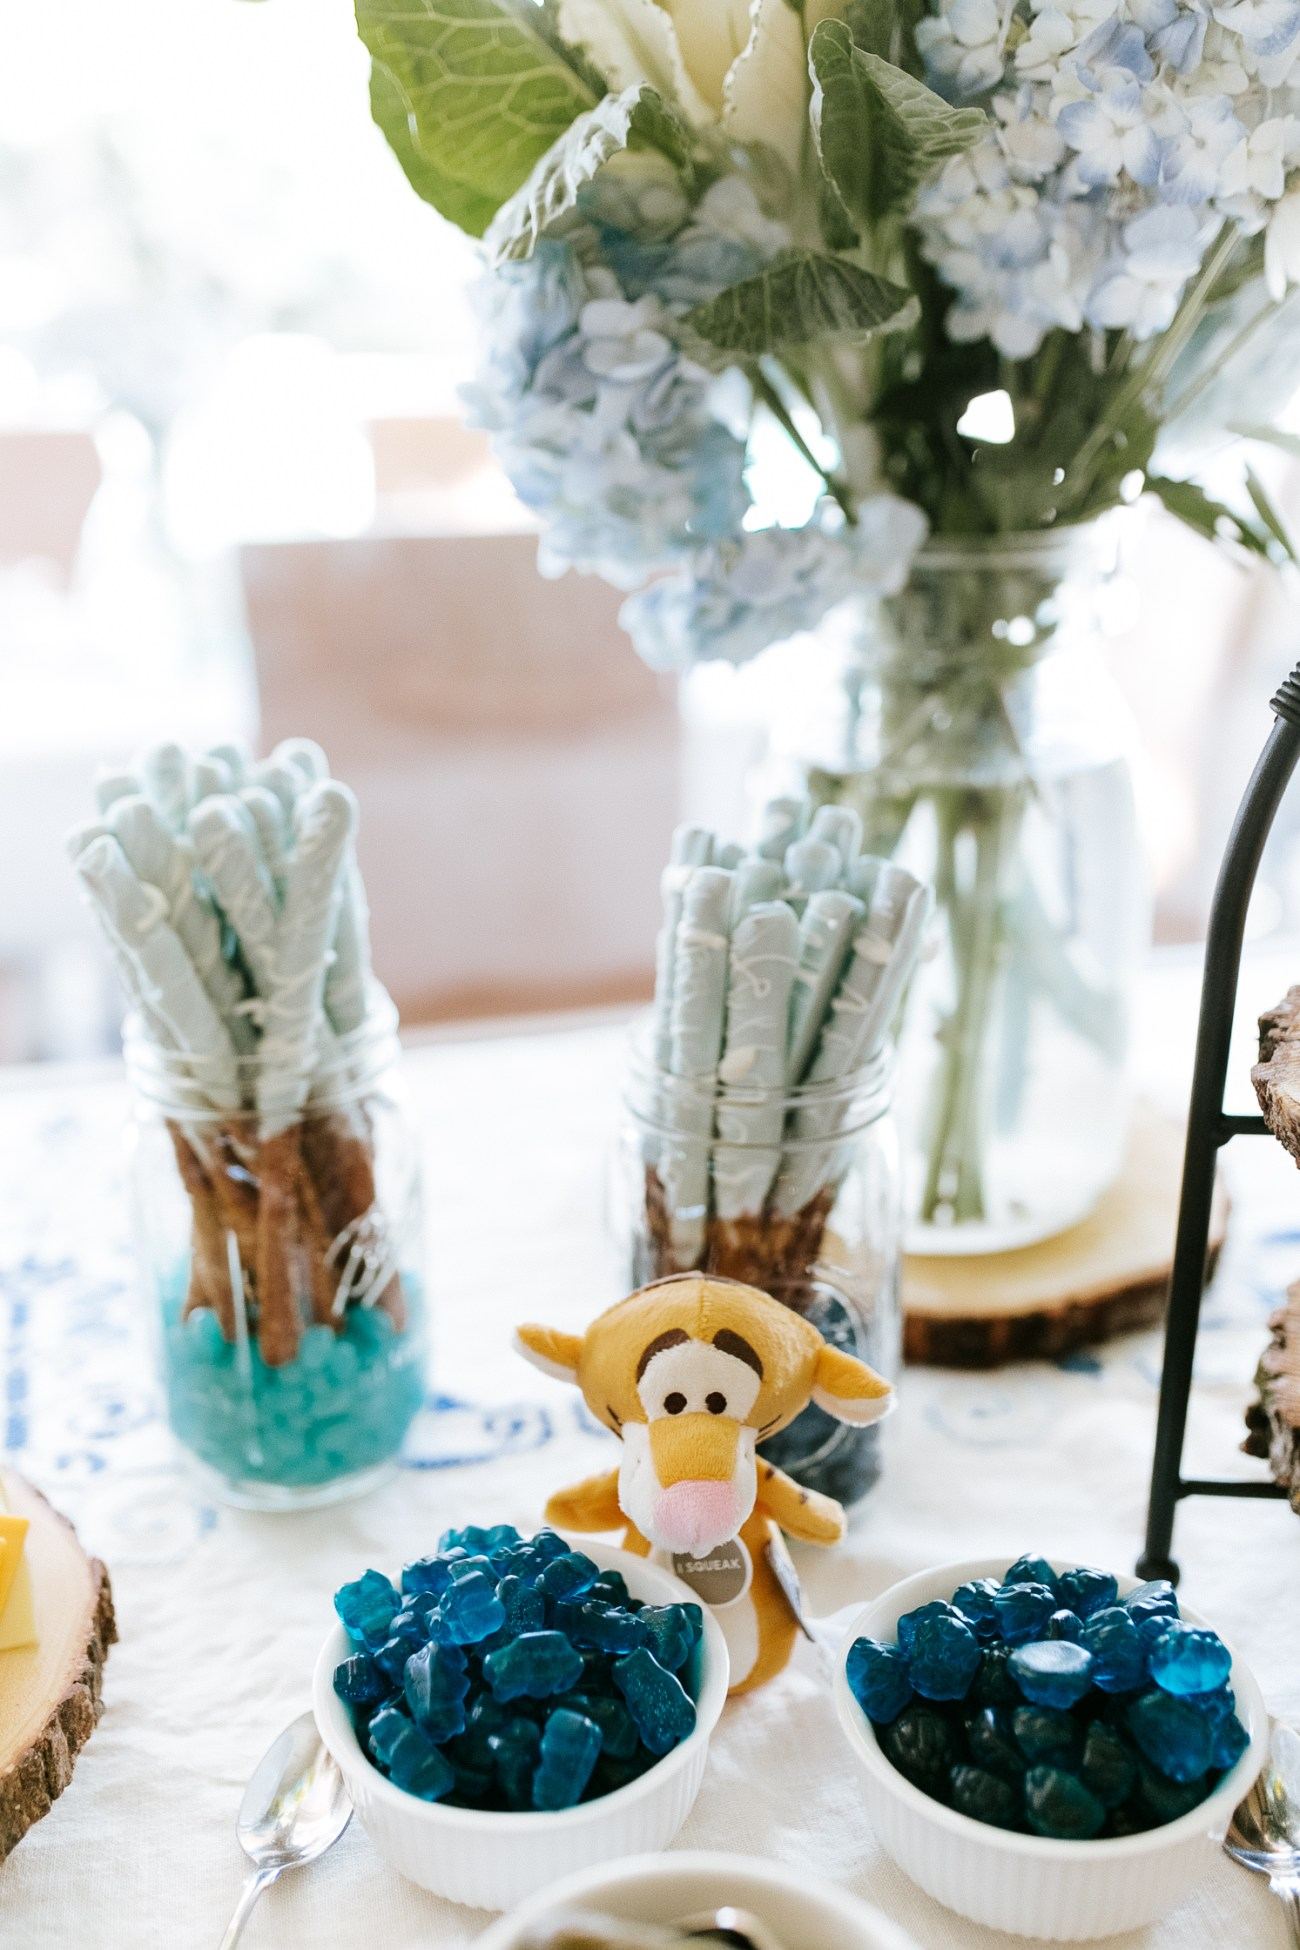 Megan Claire Photography | Phoenix Arizona Maternity and Newborn Photographer. Winnie the Pooh Baby Shower. Boy Baby Shower Ideas @meganclairephoto